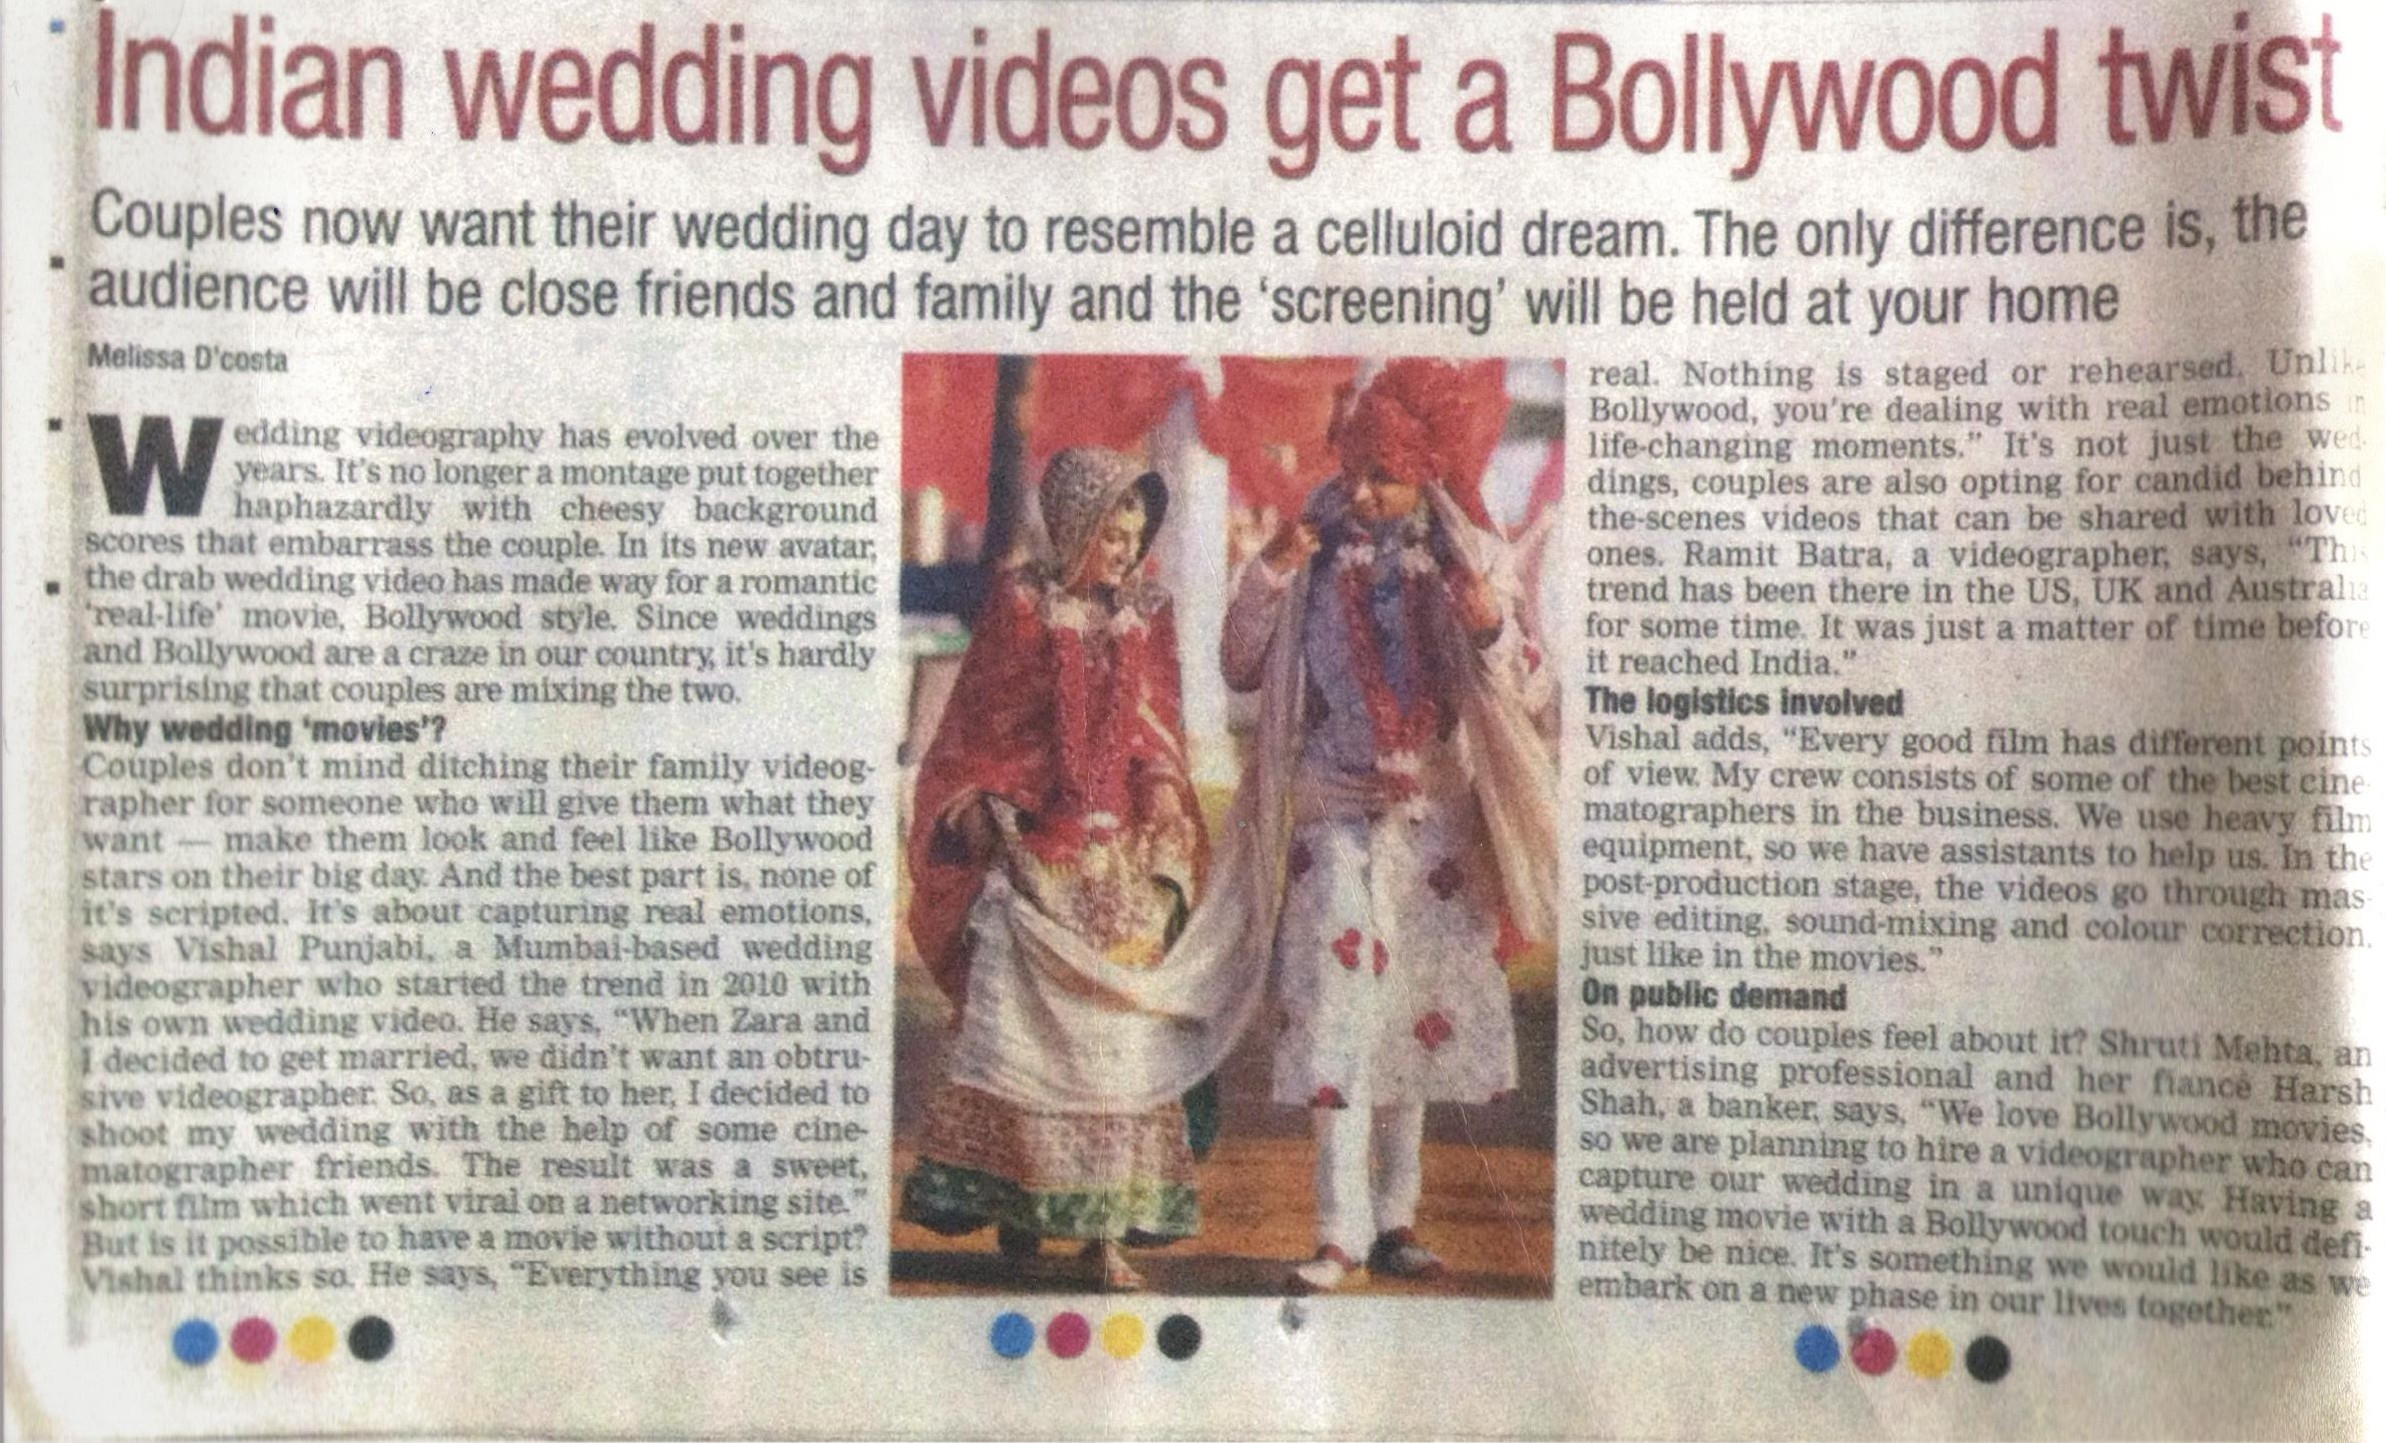 The Wedding Filmer - Indian Wedding Videos Get A Bollywood Twist